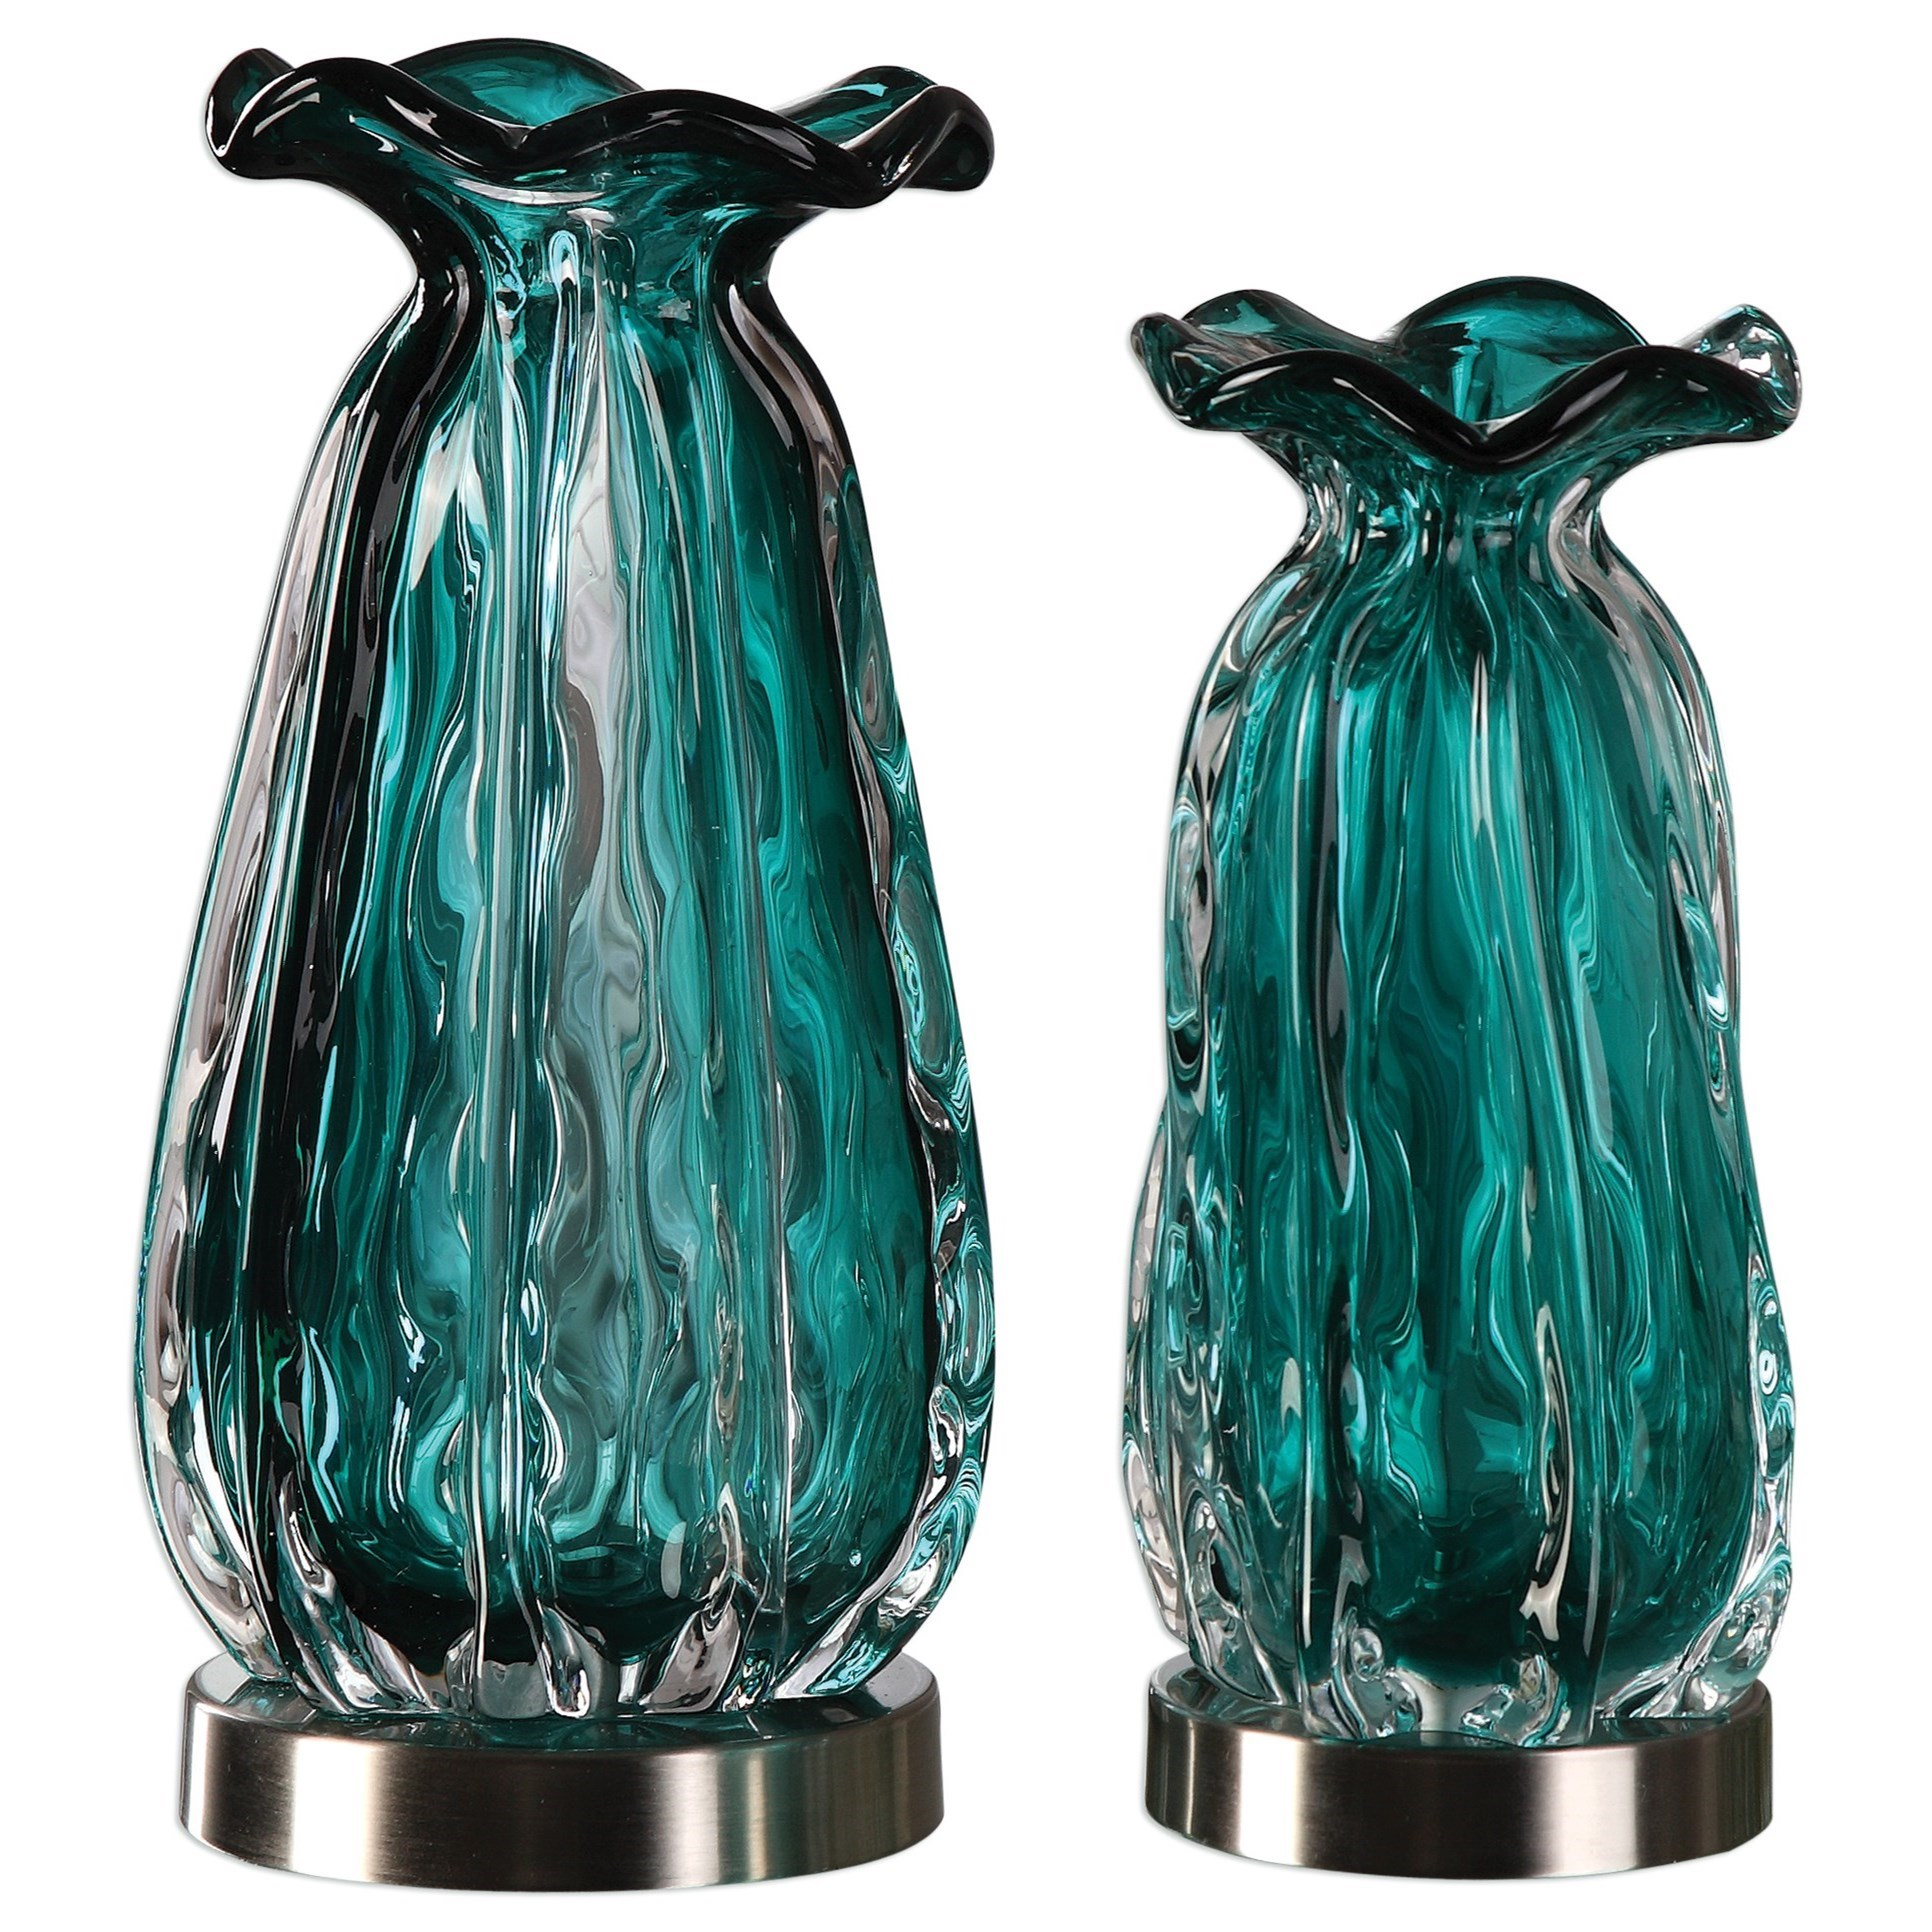 Uttermost Accessories Gabriela Vases (Set of 2) - Hudsonu0026#39;s Furniture - Accessories - Vases